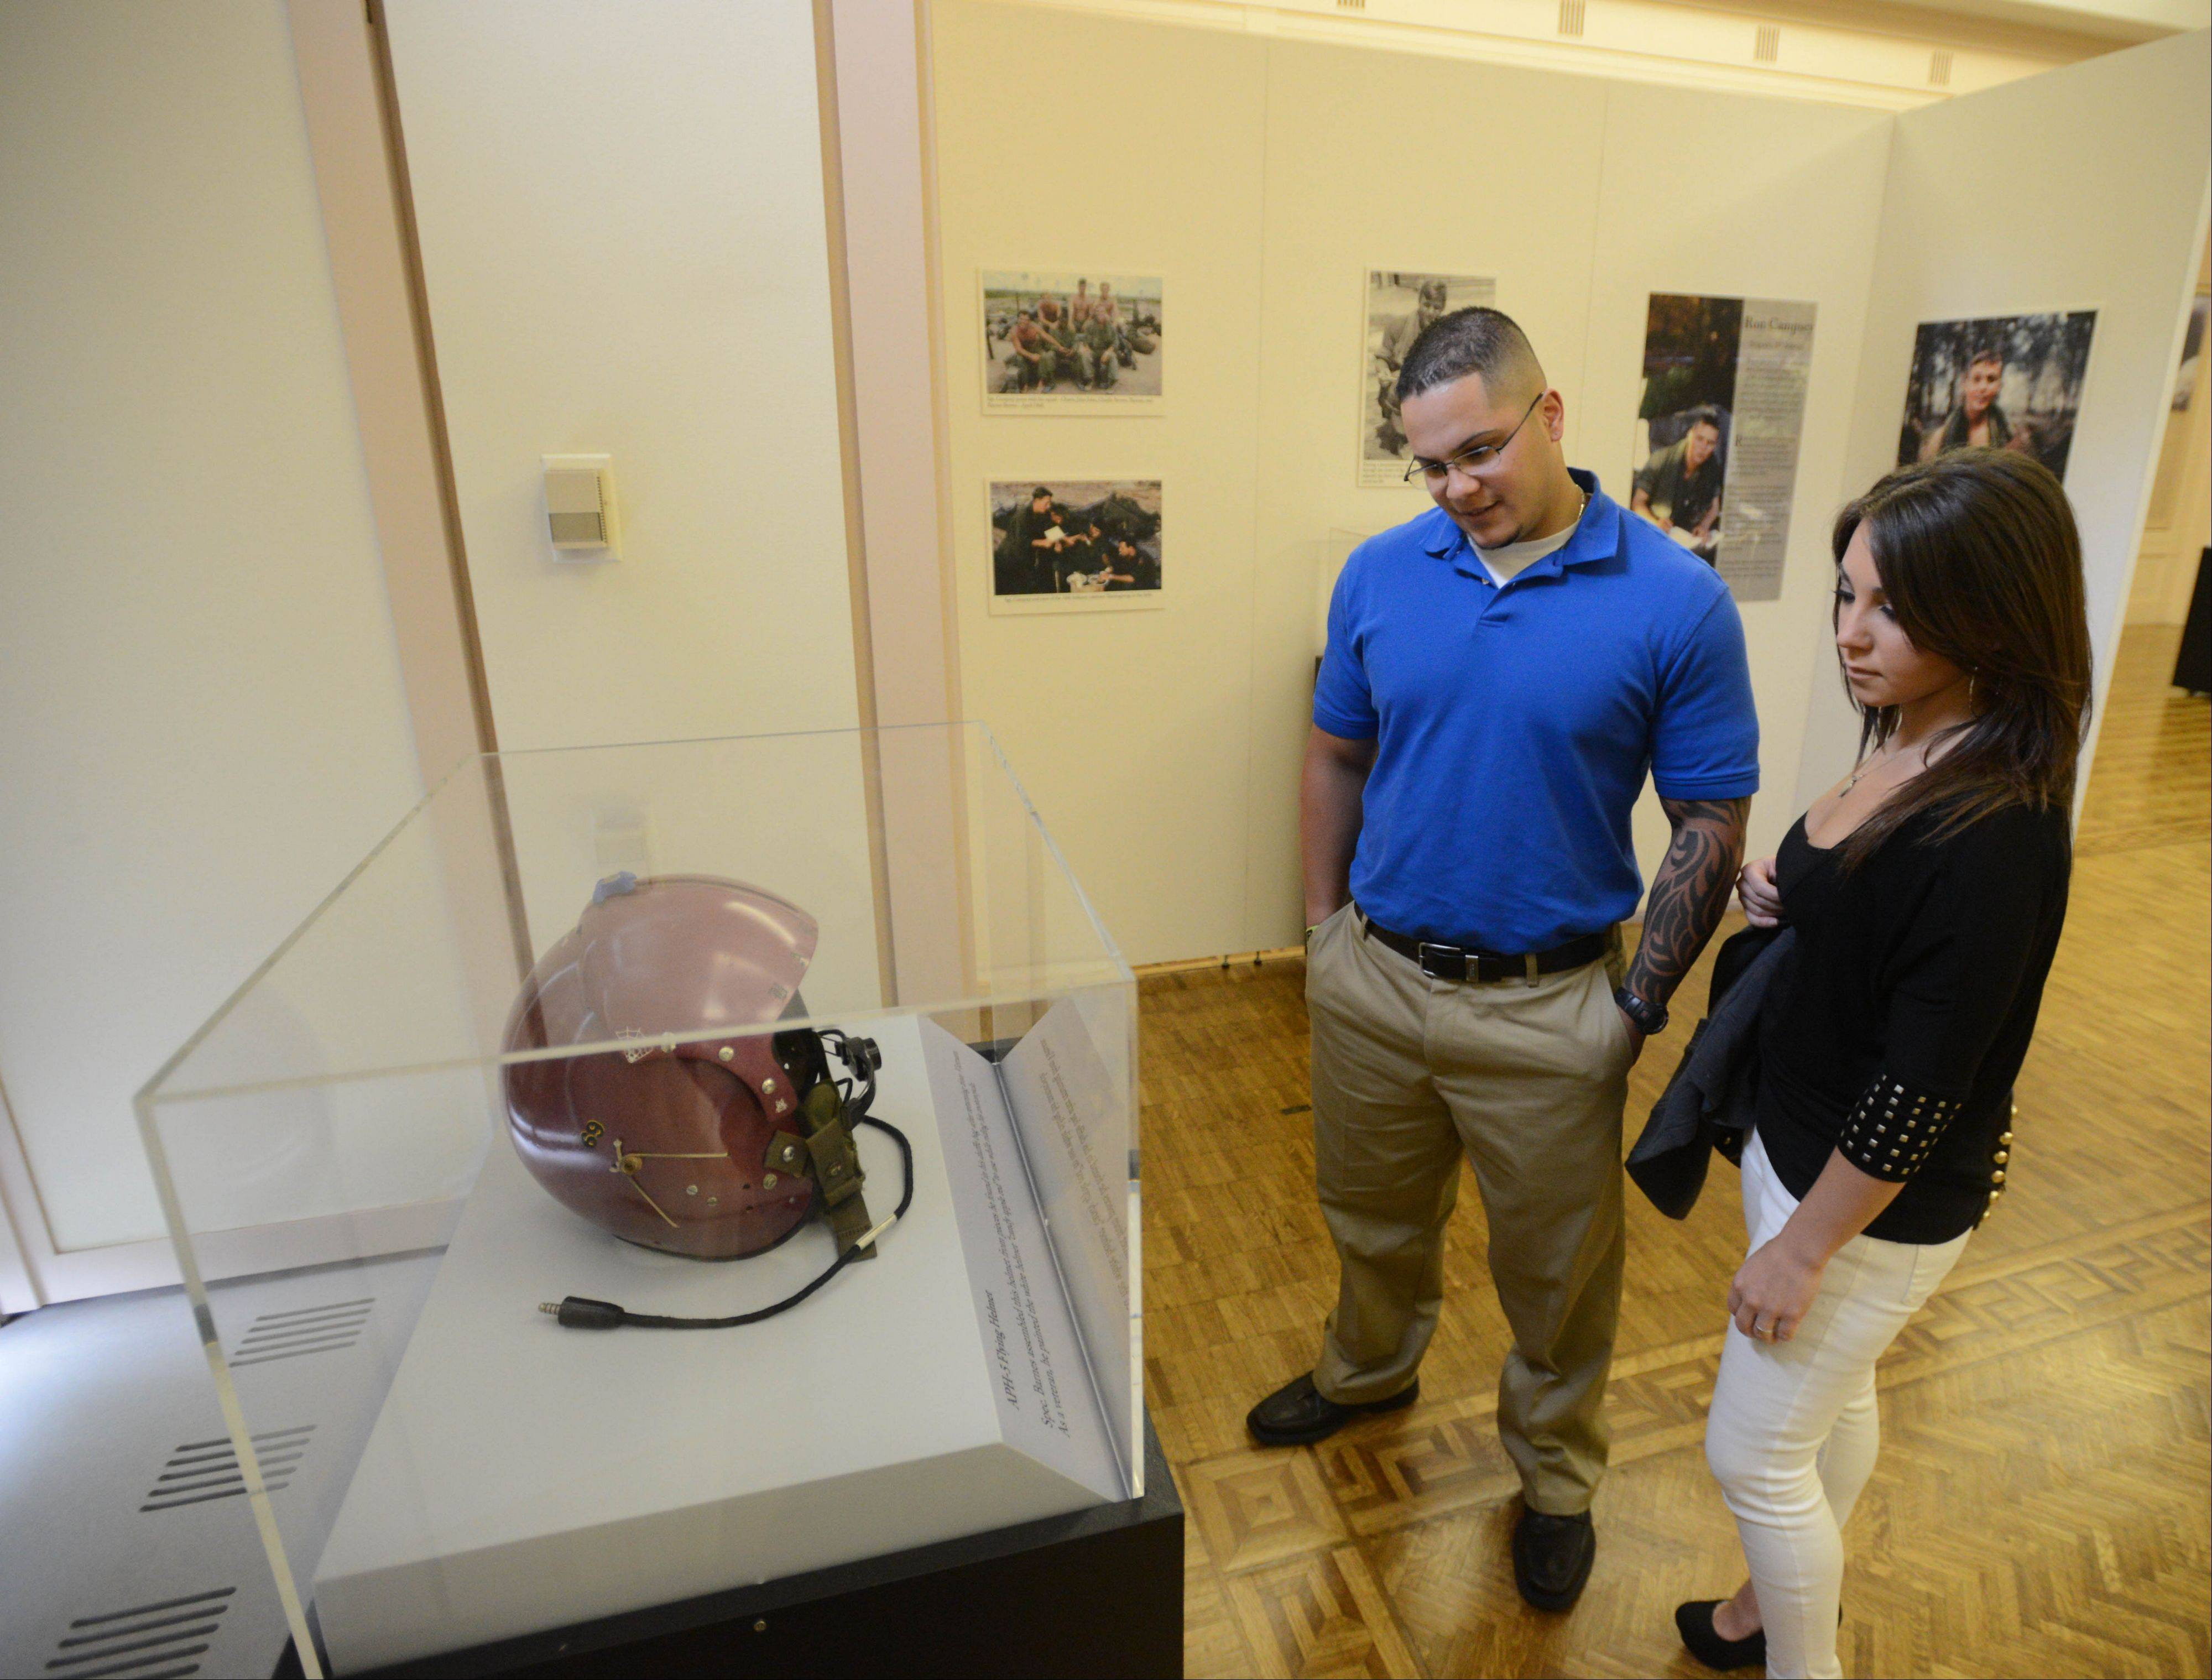 David Roldan of Chicago and Francesca LeDoux of Broadview view the �Faces of the 1st,� exhibit, which opened Saturday at the First Division Museum at Cantigny Park in Wheaton. The exhibit tells the story of the Army�s 1st Infantry Division from World War I to modern conflicts through the eyes of 17 veterans.